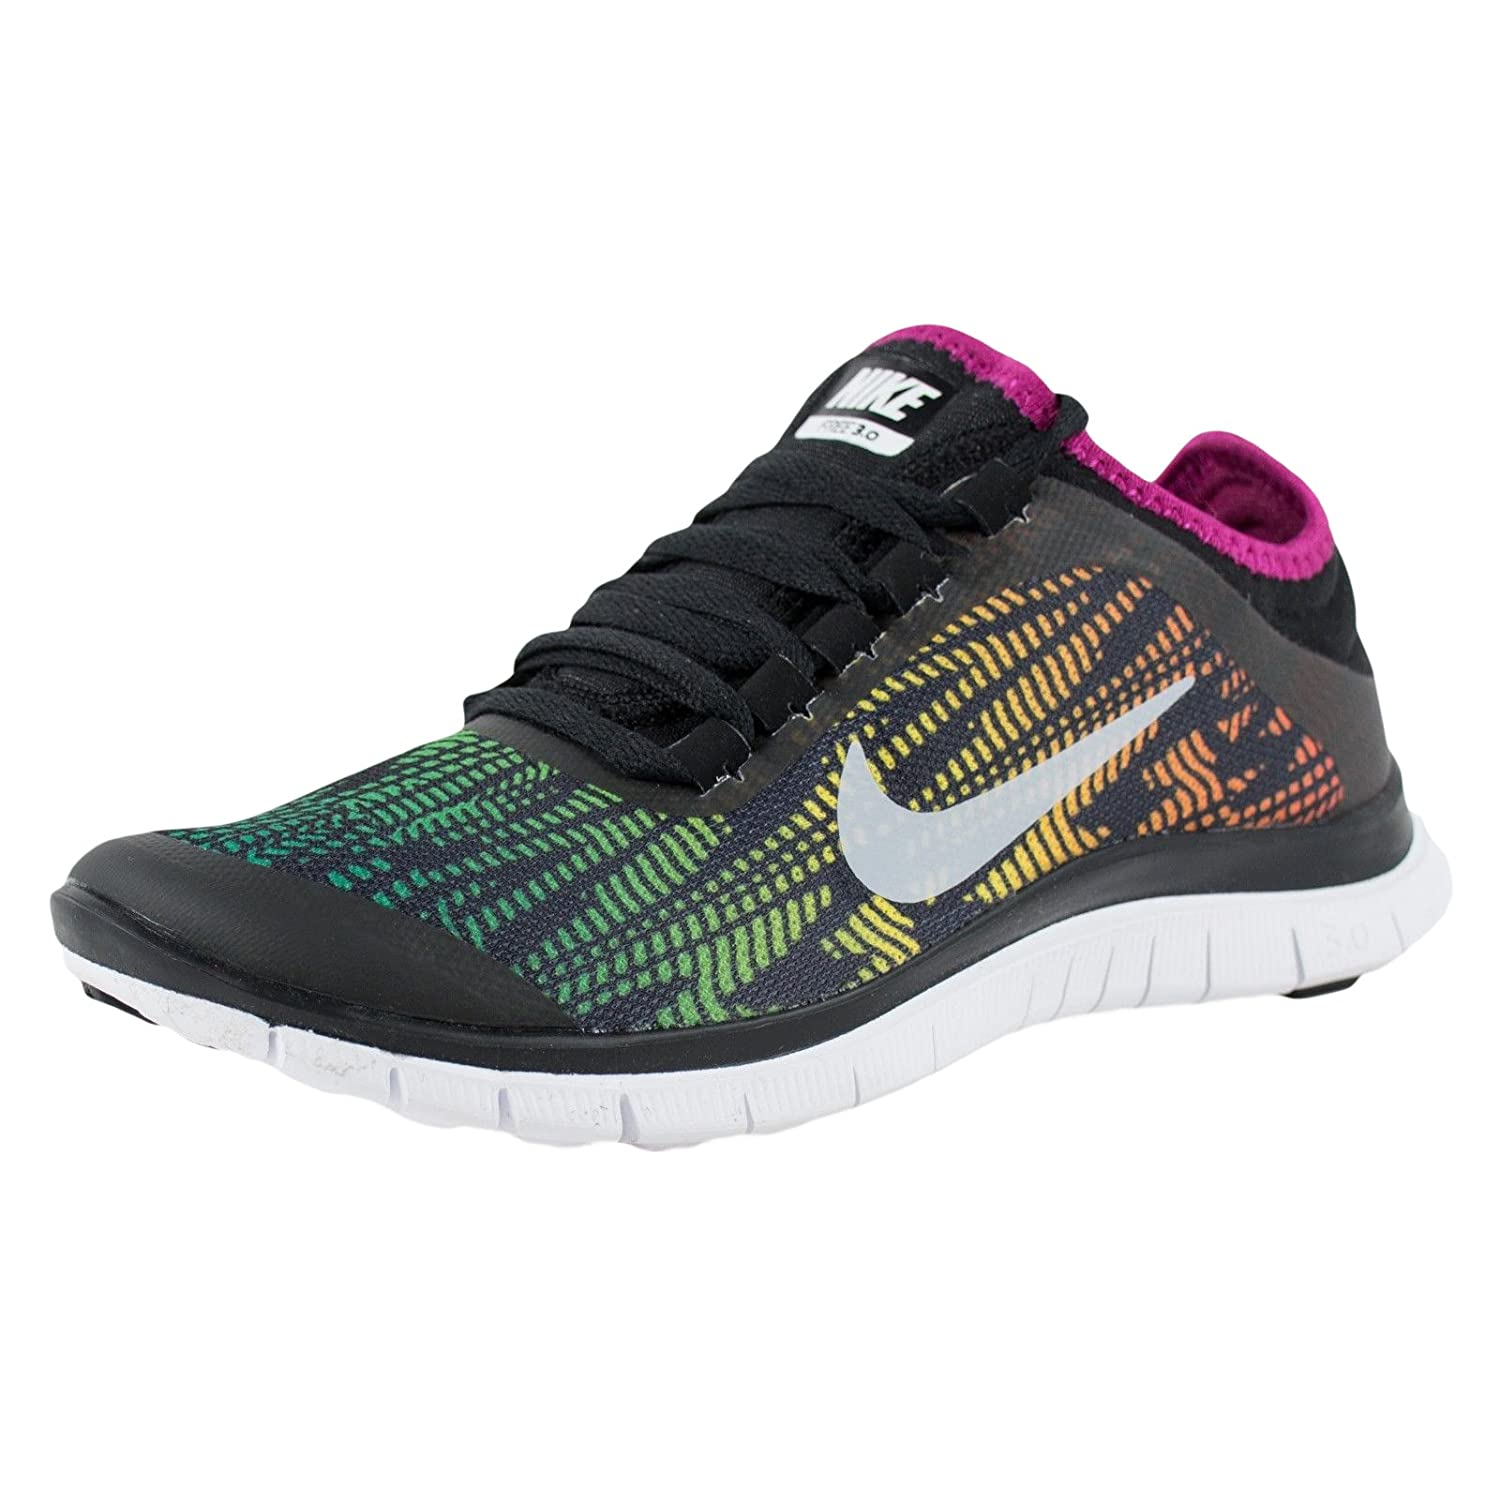 new concept 8528f a0312 Amazon.com   Nike Free 3.0 V5 Pnt Running Women s Shoes Size 5   Road  Running